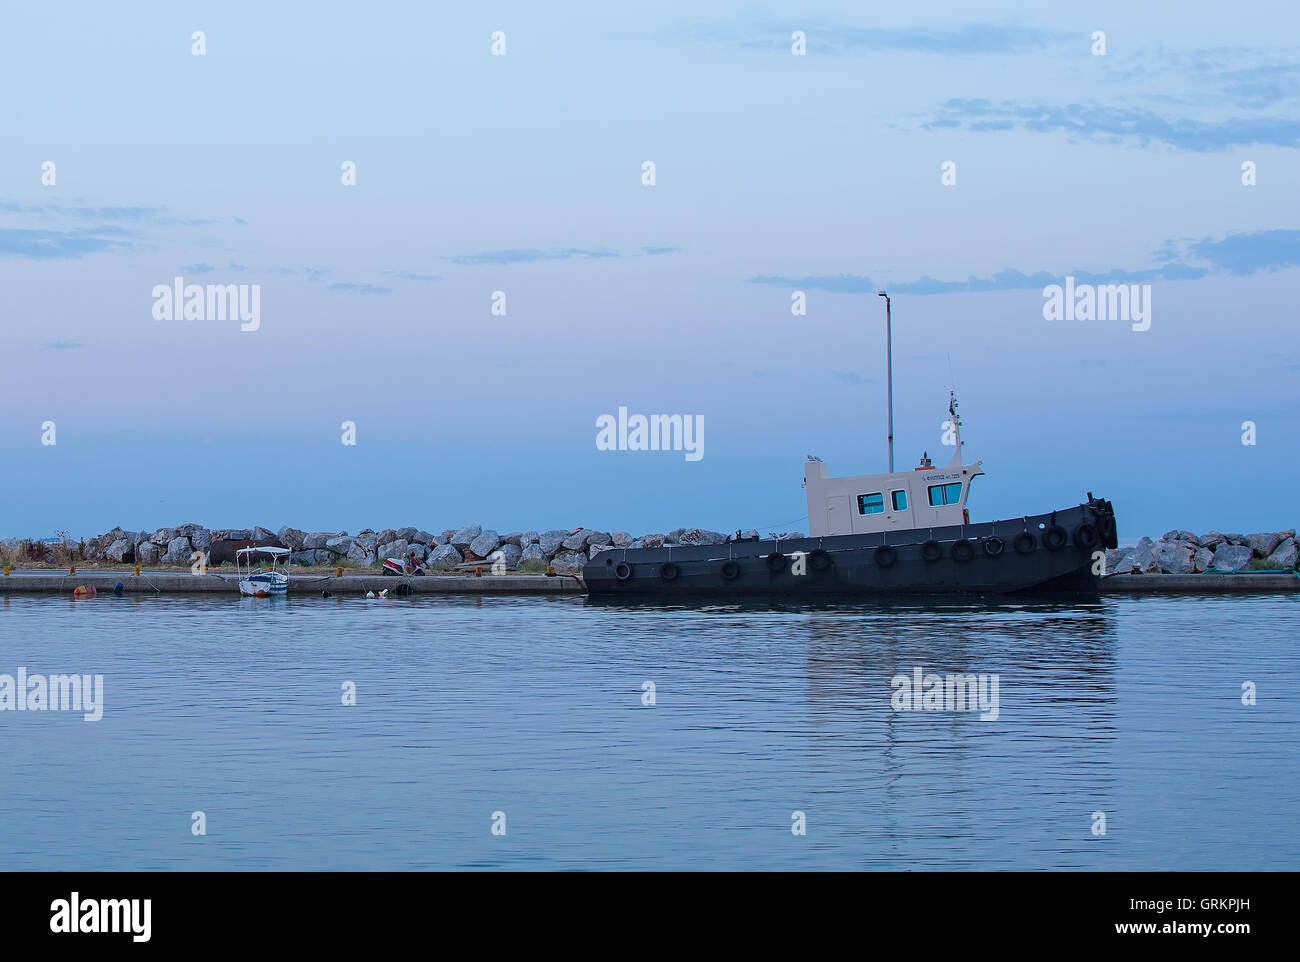 Towboat in the Harbor at Sunrise. Docked Tugboat in the Port at Dawn. Ship in the Sea Bay. - Stock Image